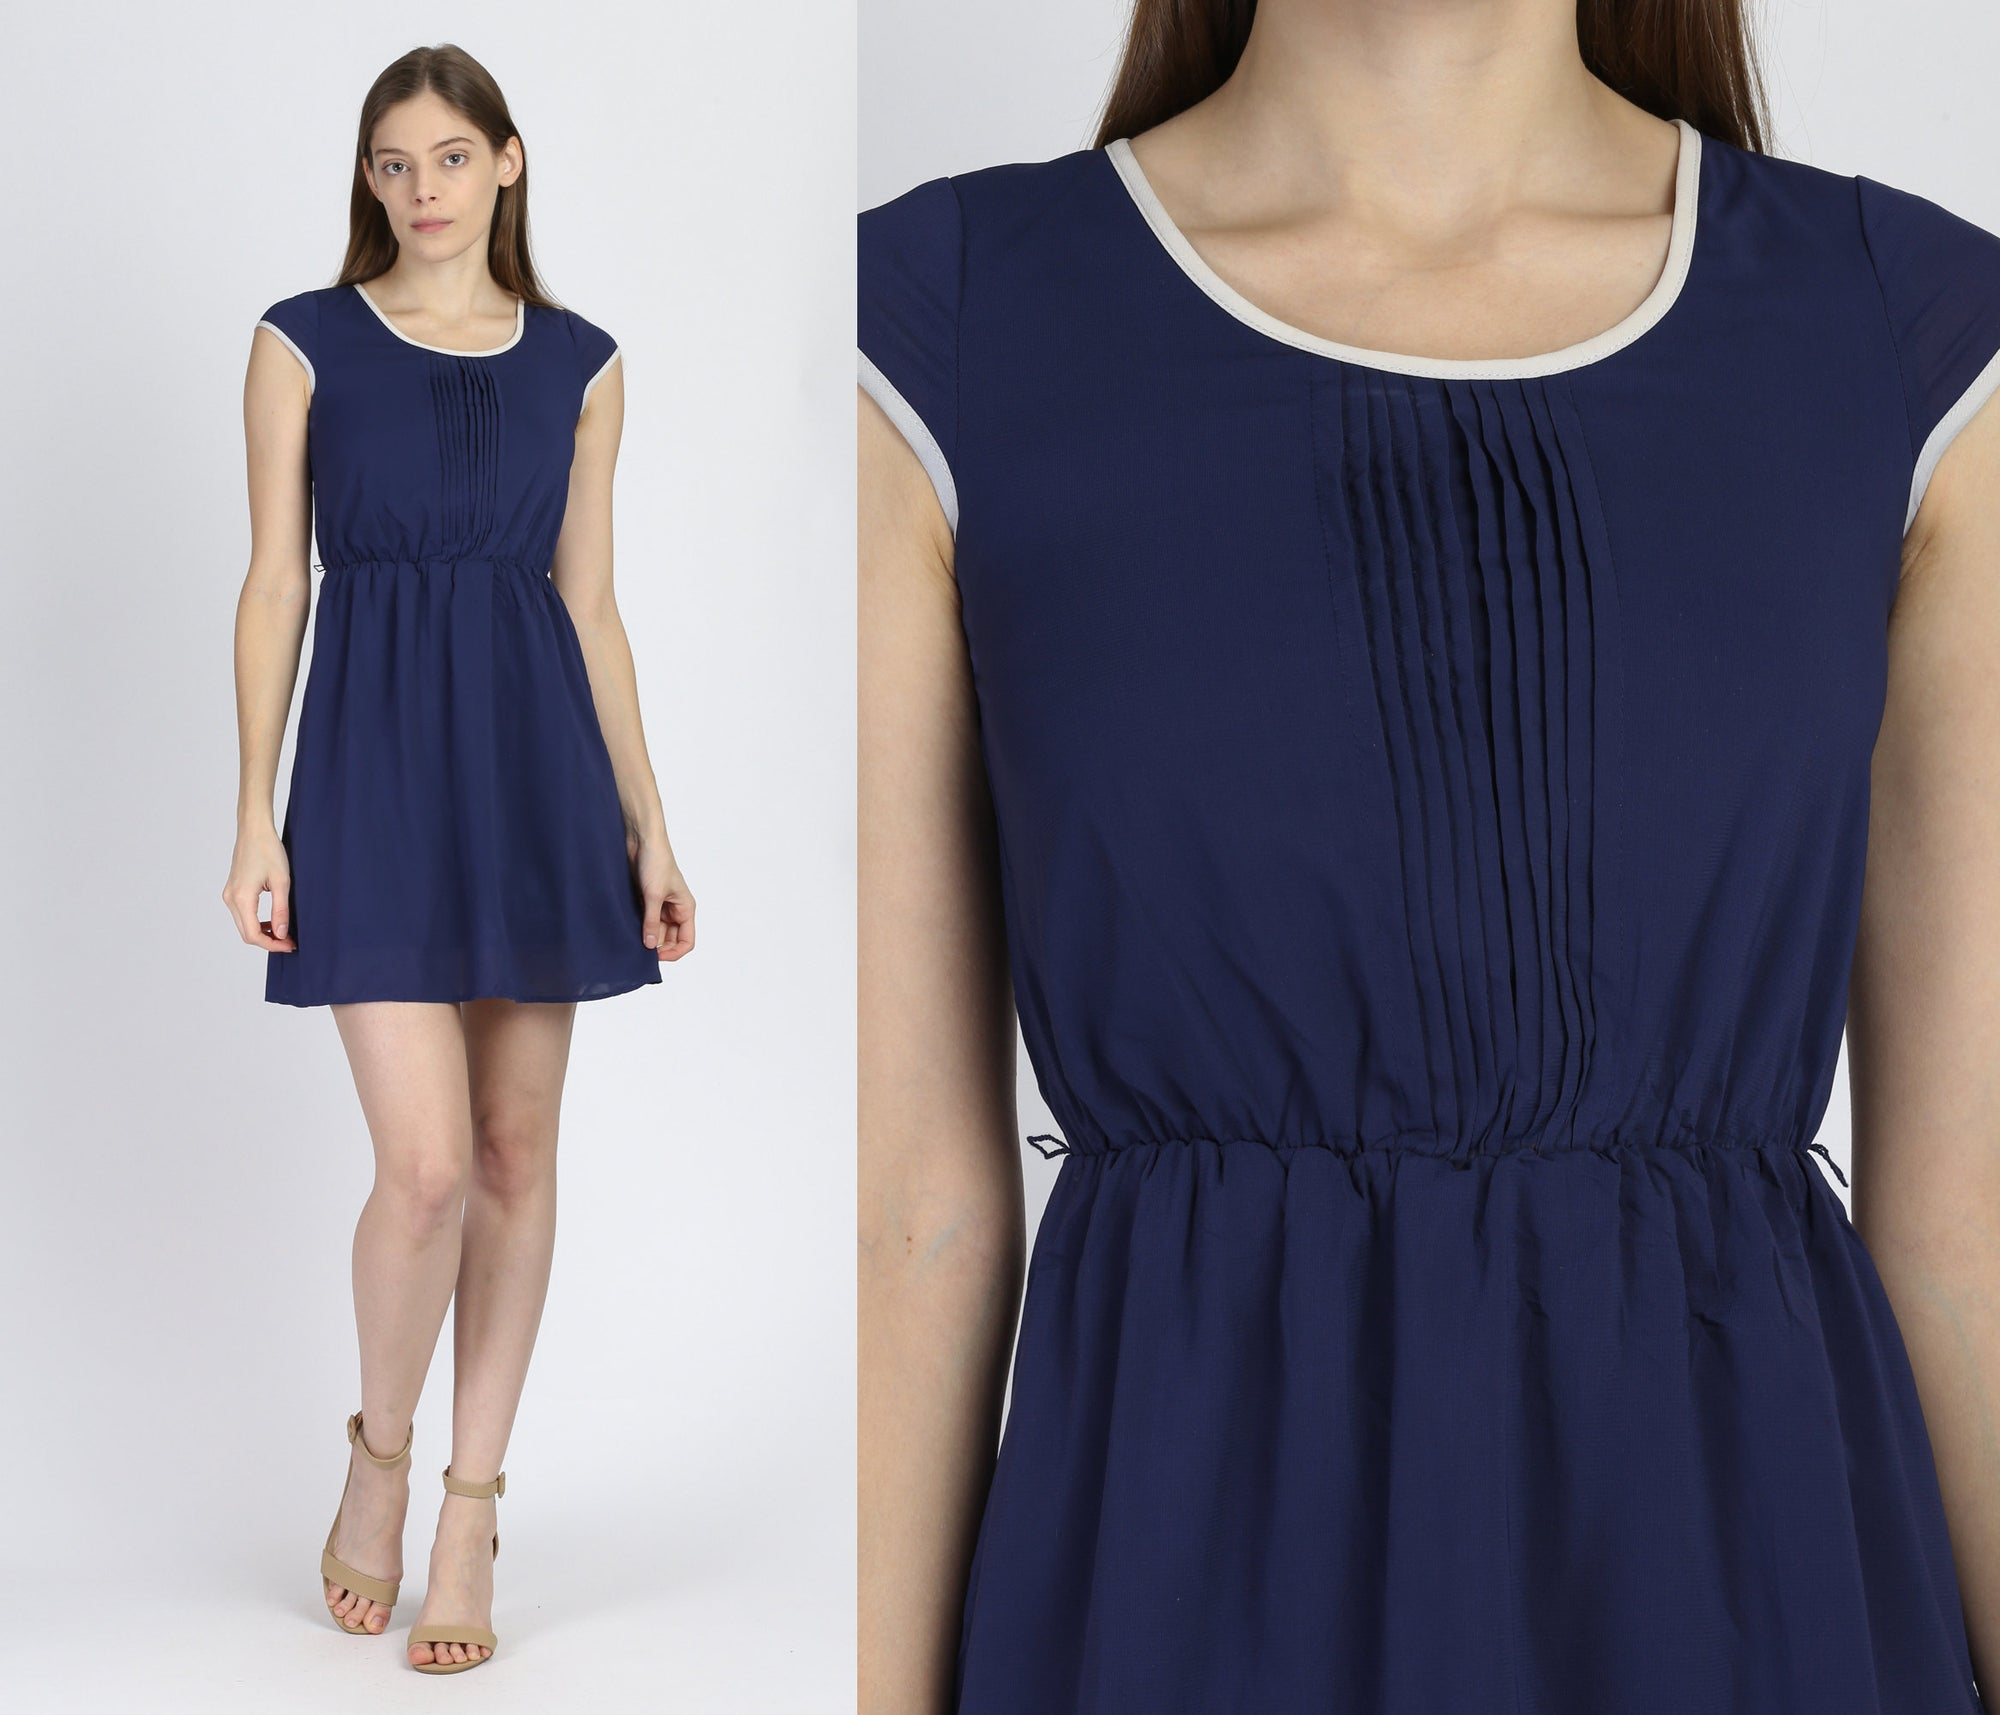 Retro Navy Blue Mini Dress - Petite XS